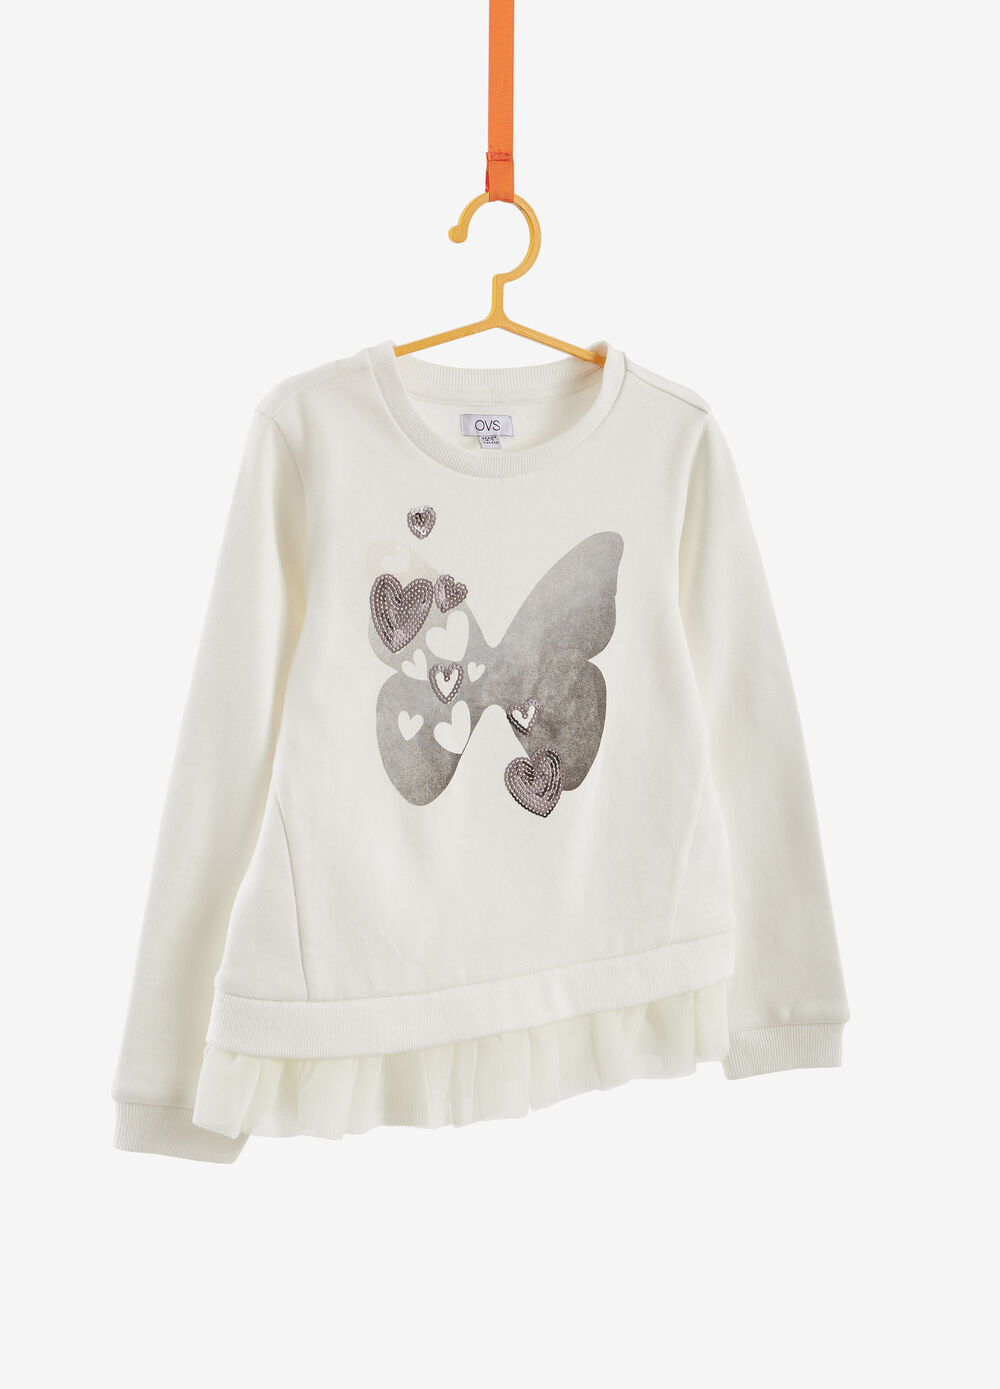 Sweatshirt in 100% cotton with print and flounce on the hem